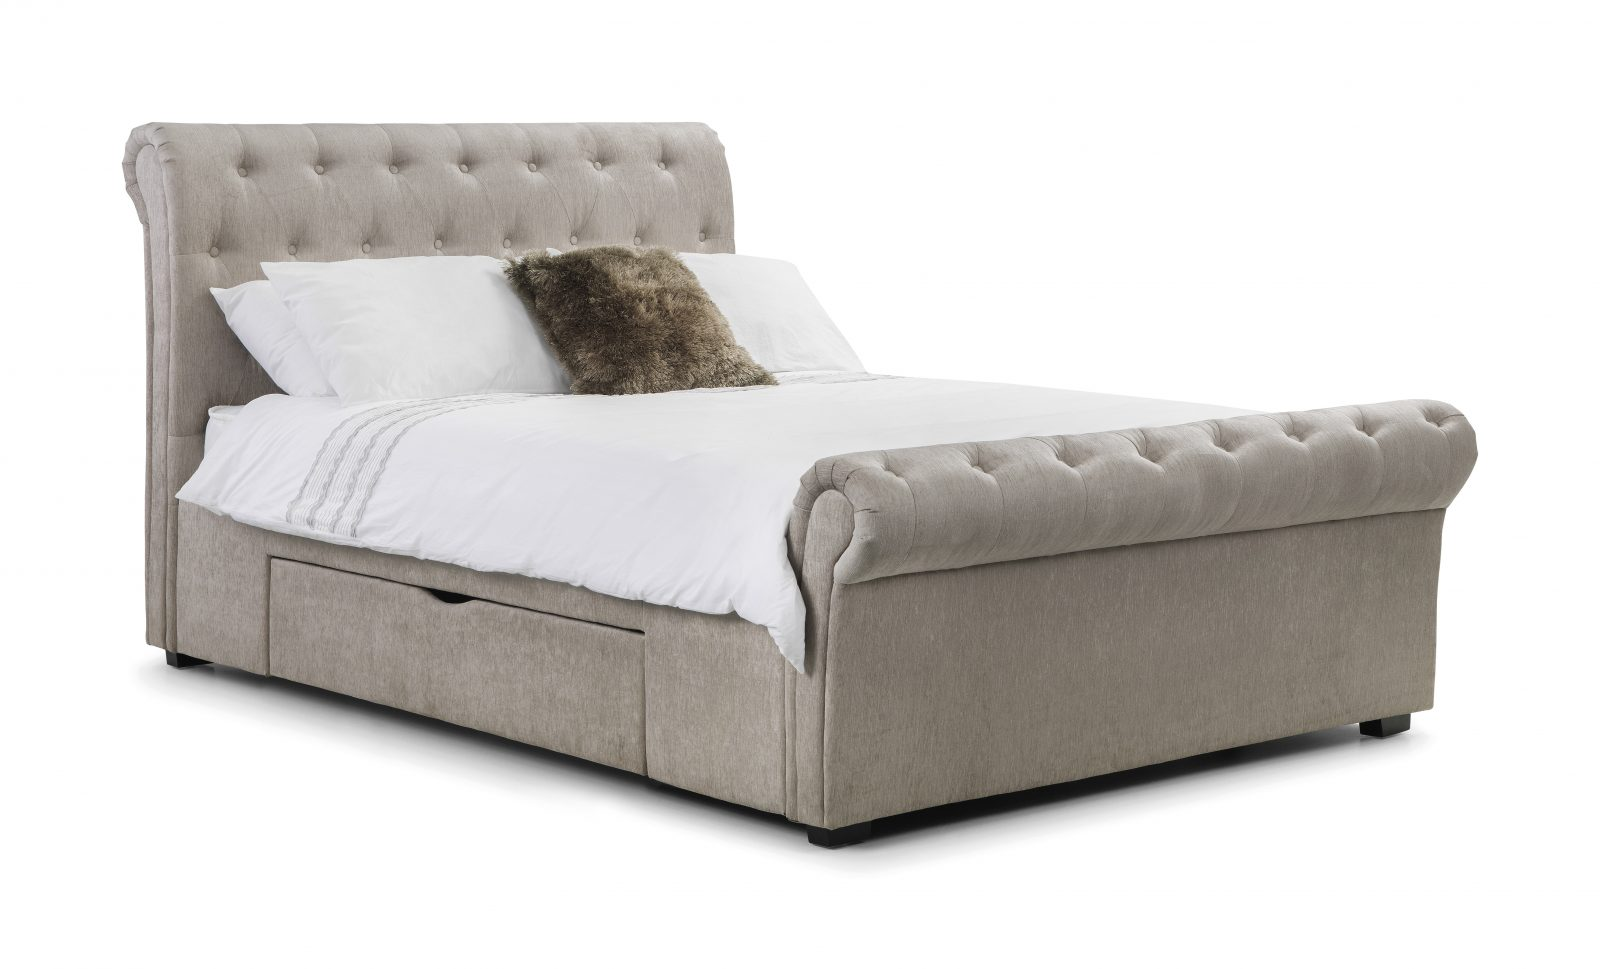 Ravello Double Fabric Bed Frame with Drawers